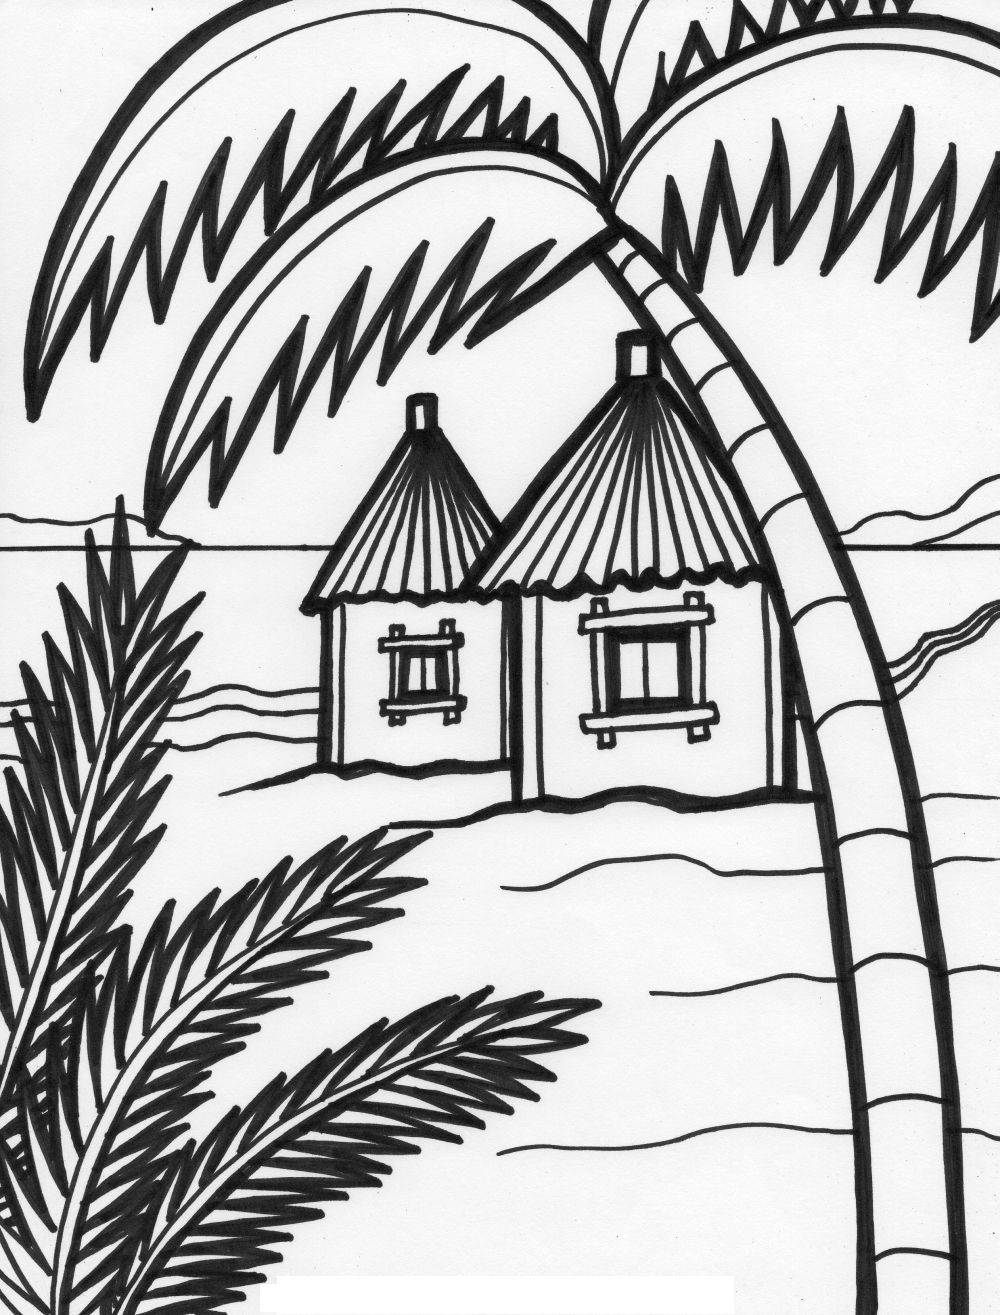 Coloring pages beach - Beach House Coloring Pages Http Www Coloringoutline Com Beach